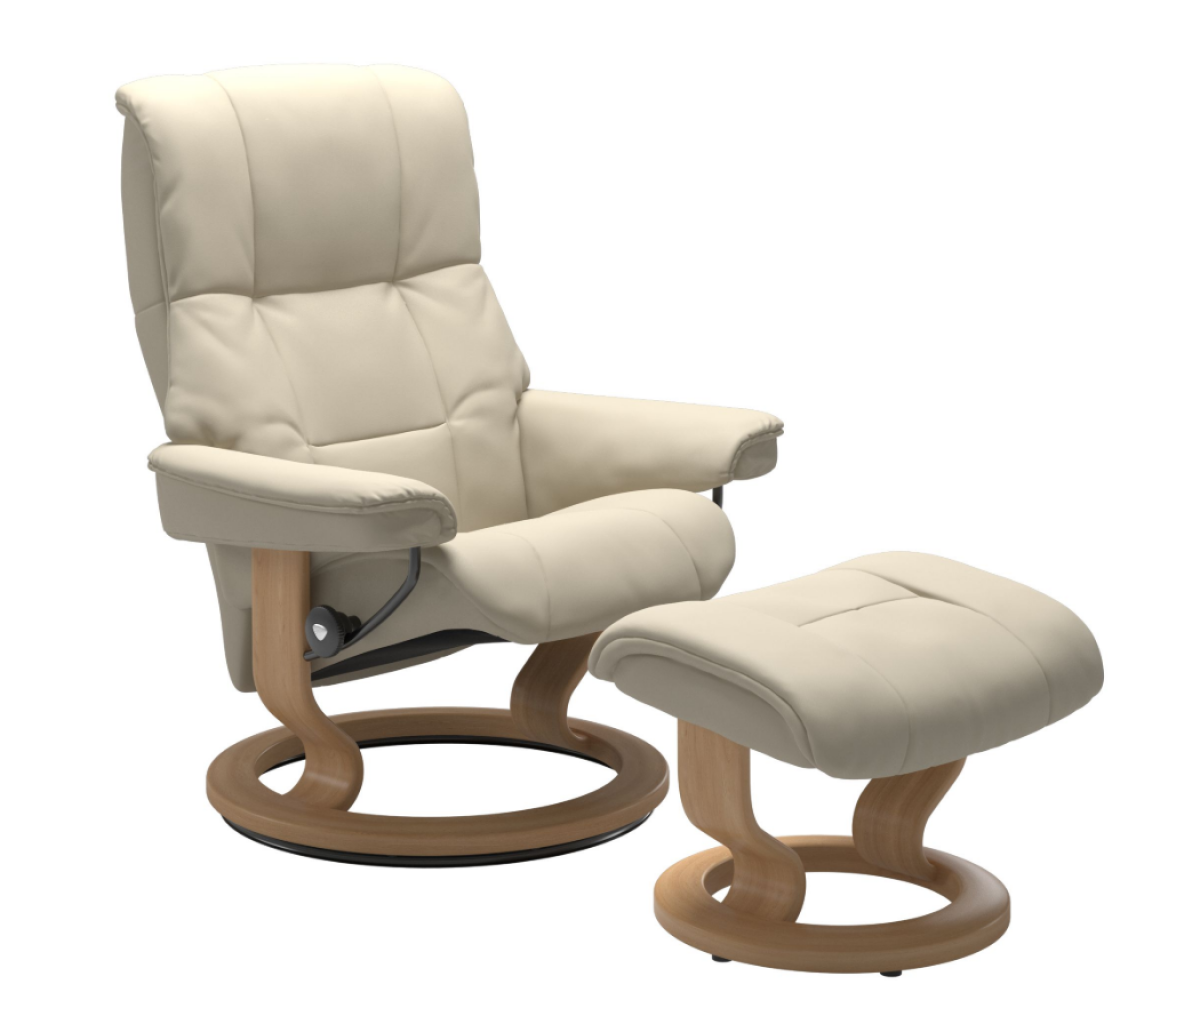 Stressless Mayfair Cream Large Recliner